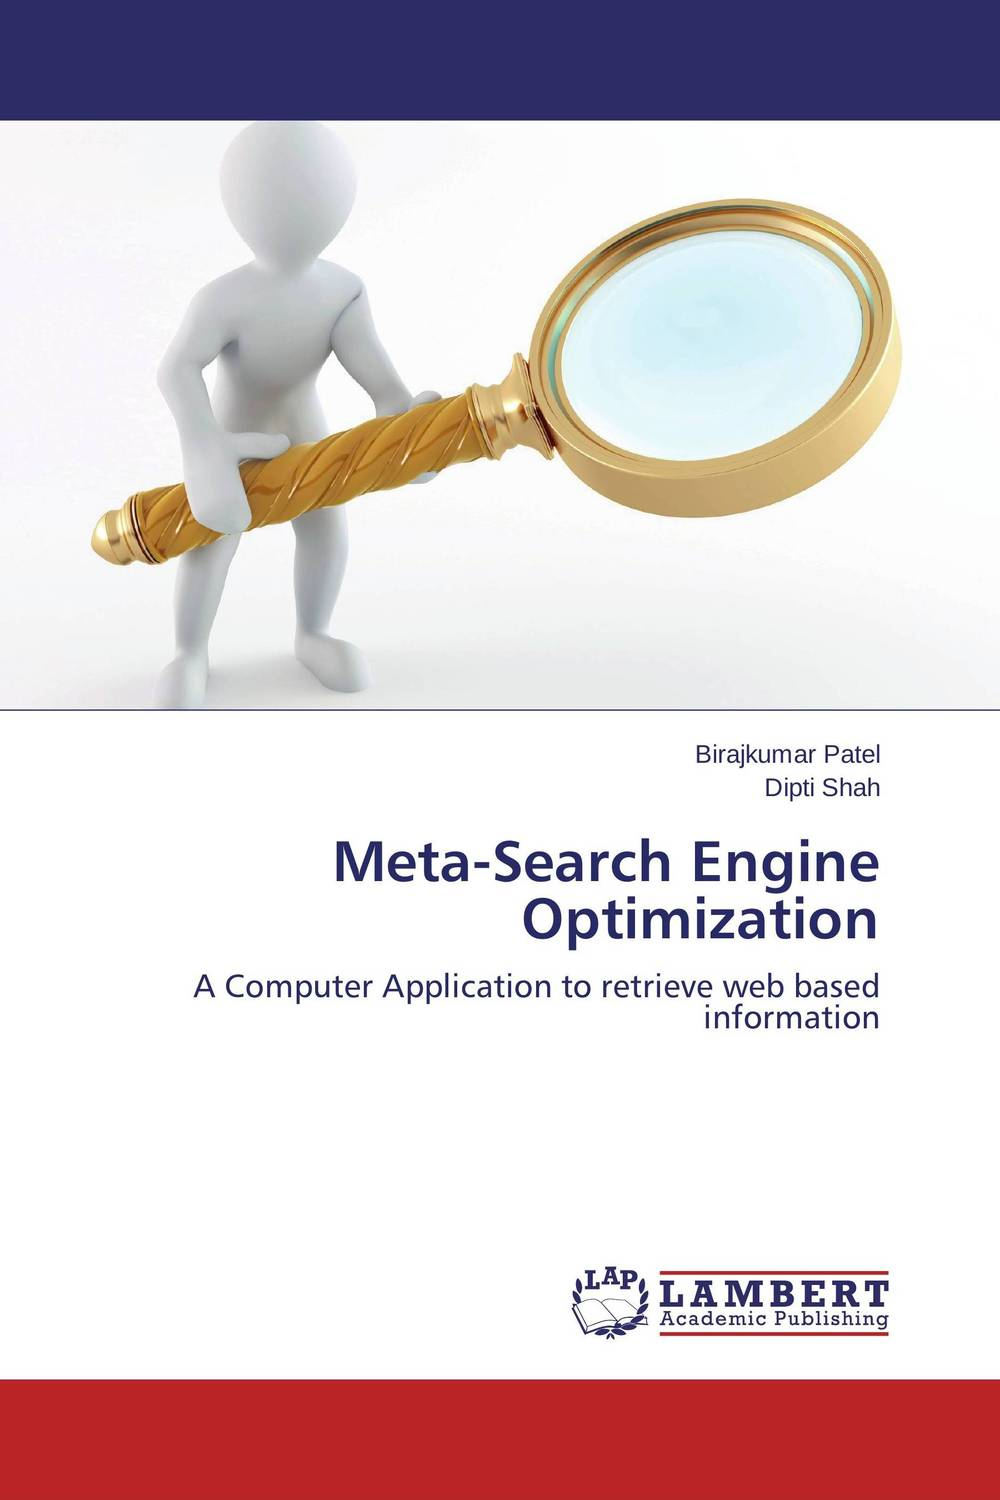 Meta-Search Engine Optimization search for extraterrestrial intelligence